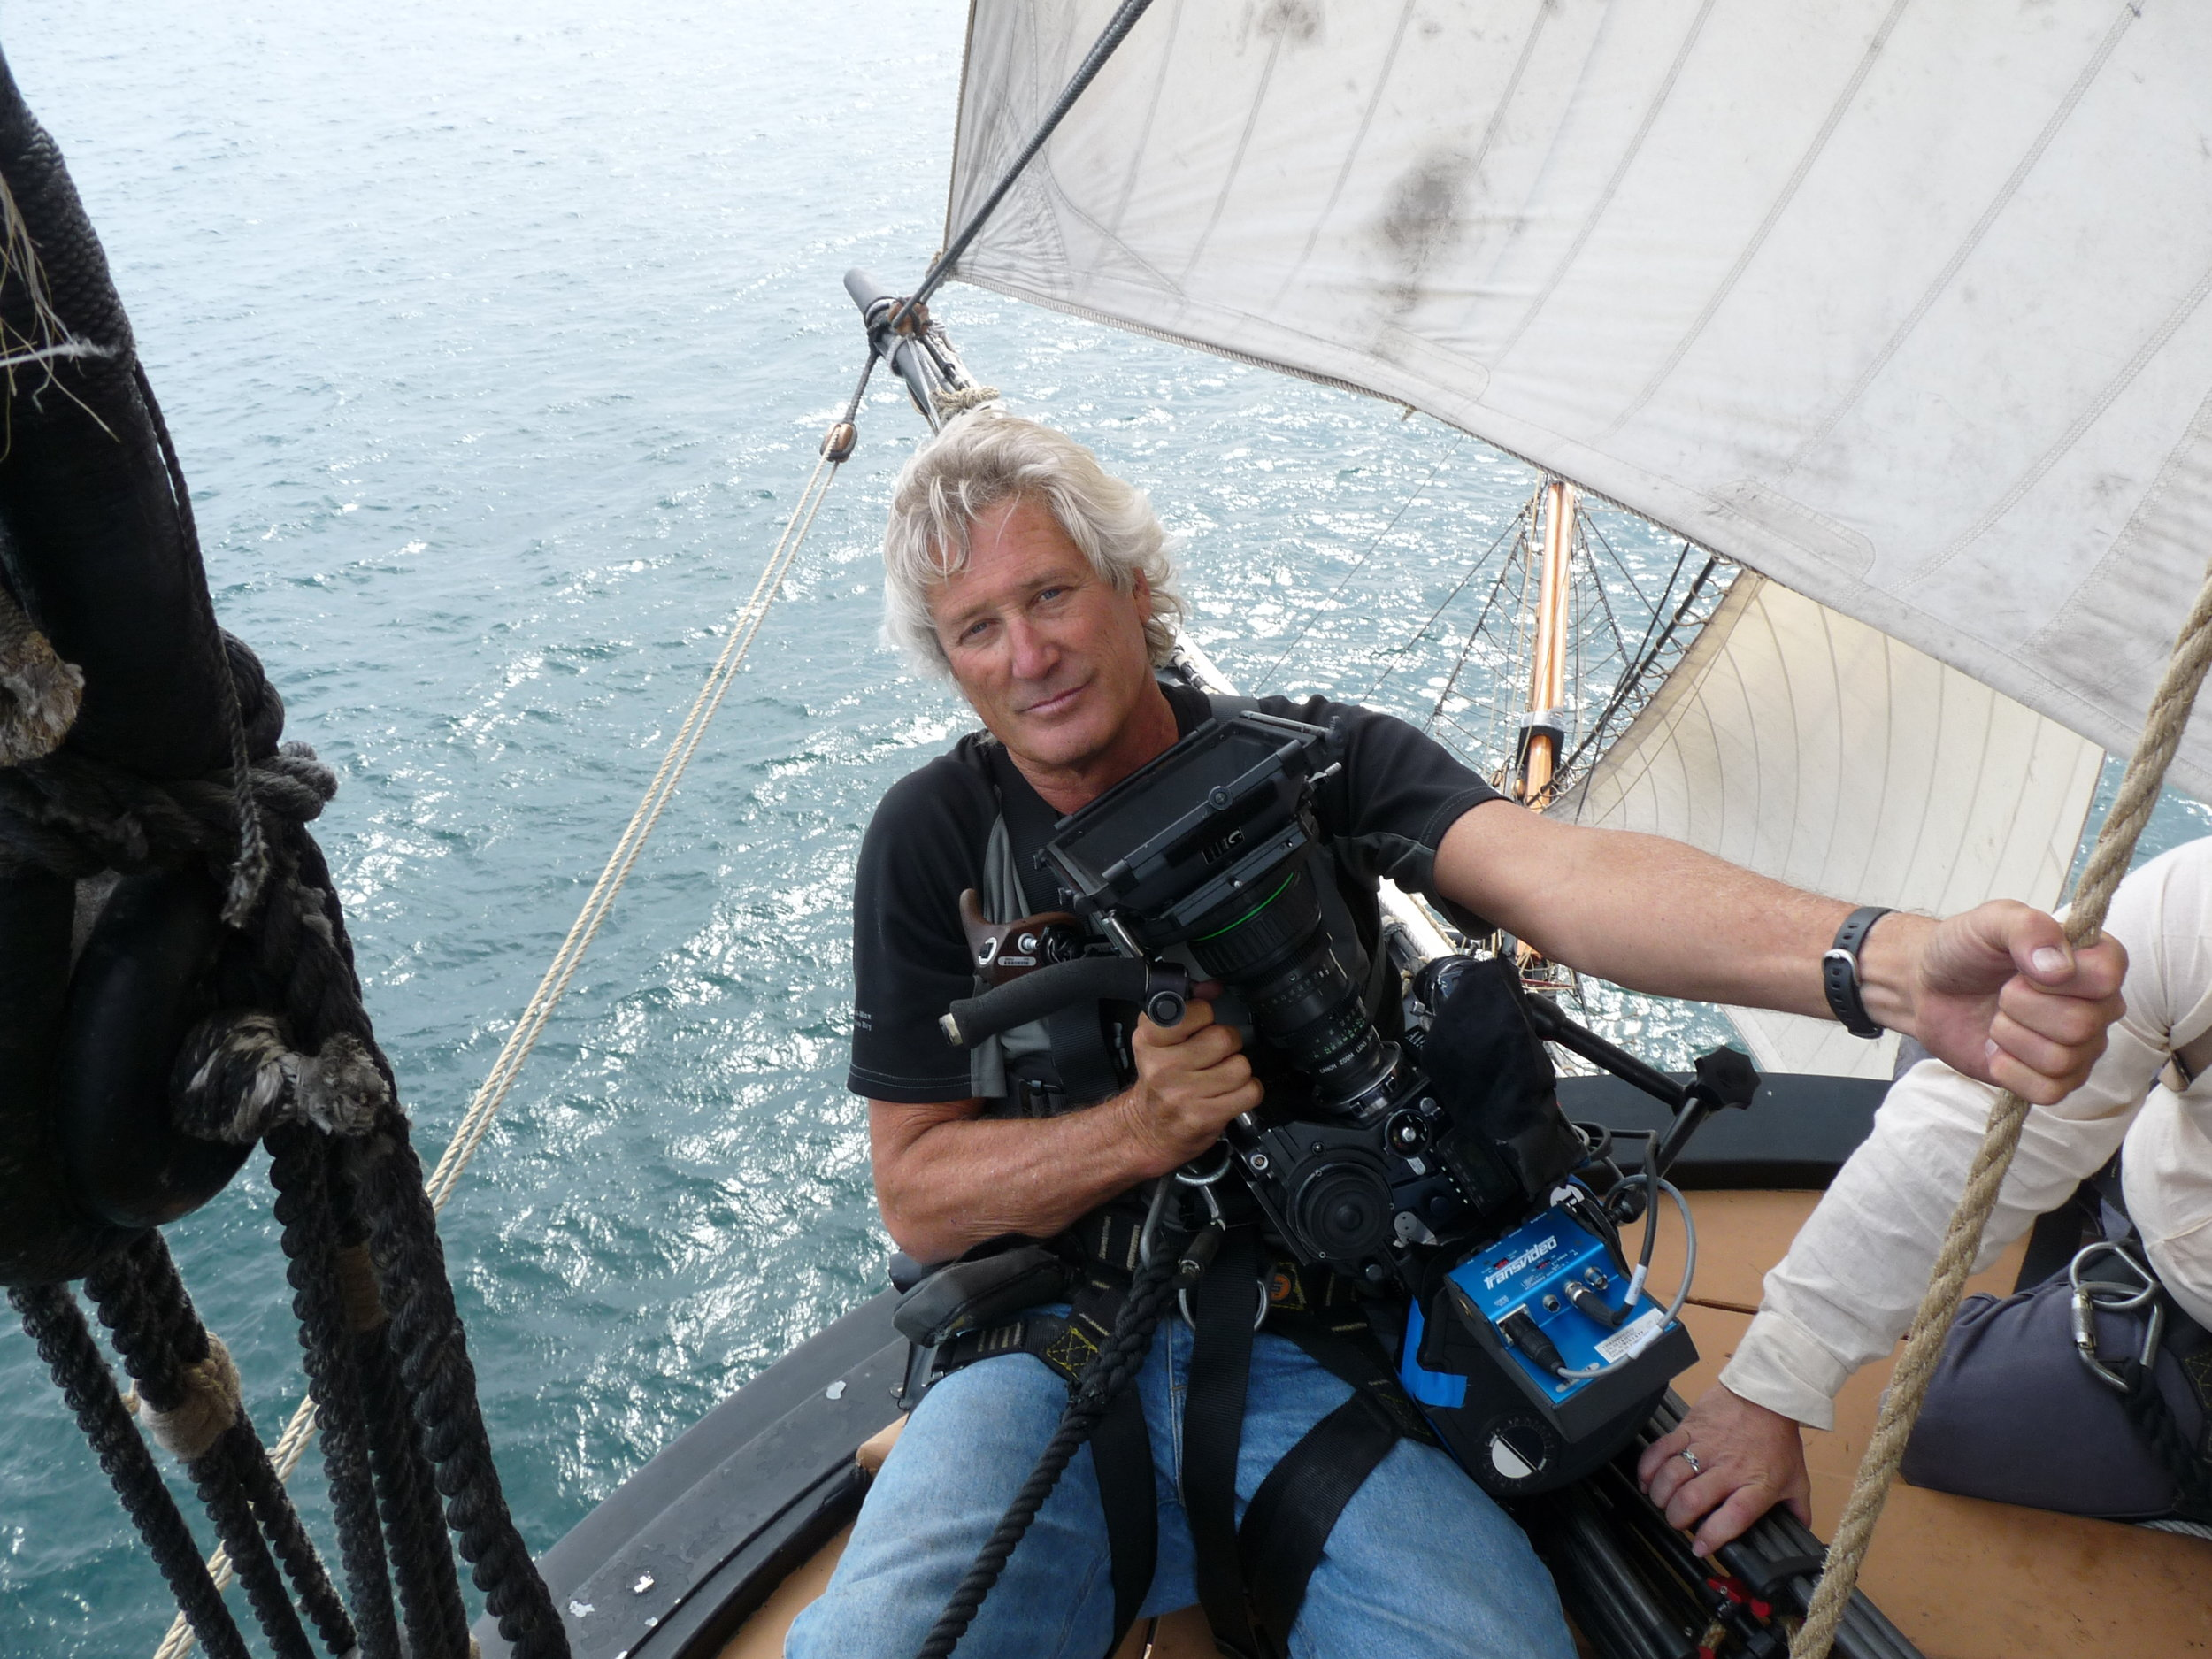 My last job shooting film (not tape or digital). Fittingly, I'm up in the rigging of an ancient square rigger which has always been my metaphor for film versus digital. Making INTO THE DEEP, WHALING AND THE WORLD for Ric Burns.